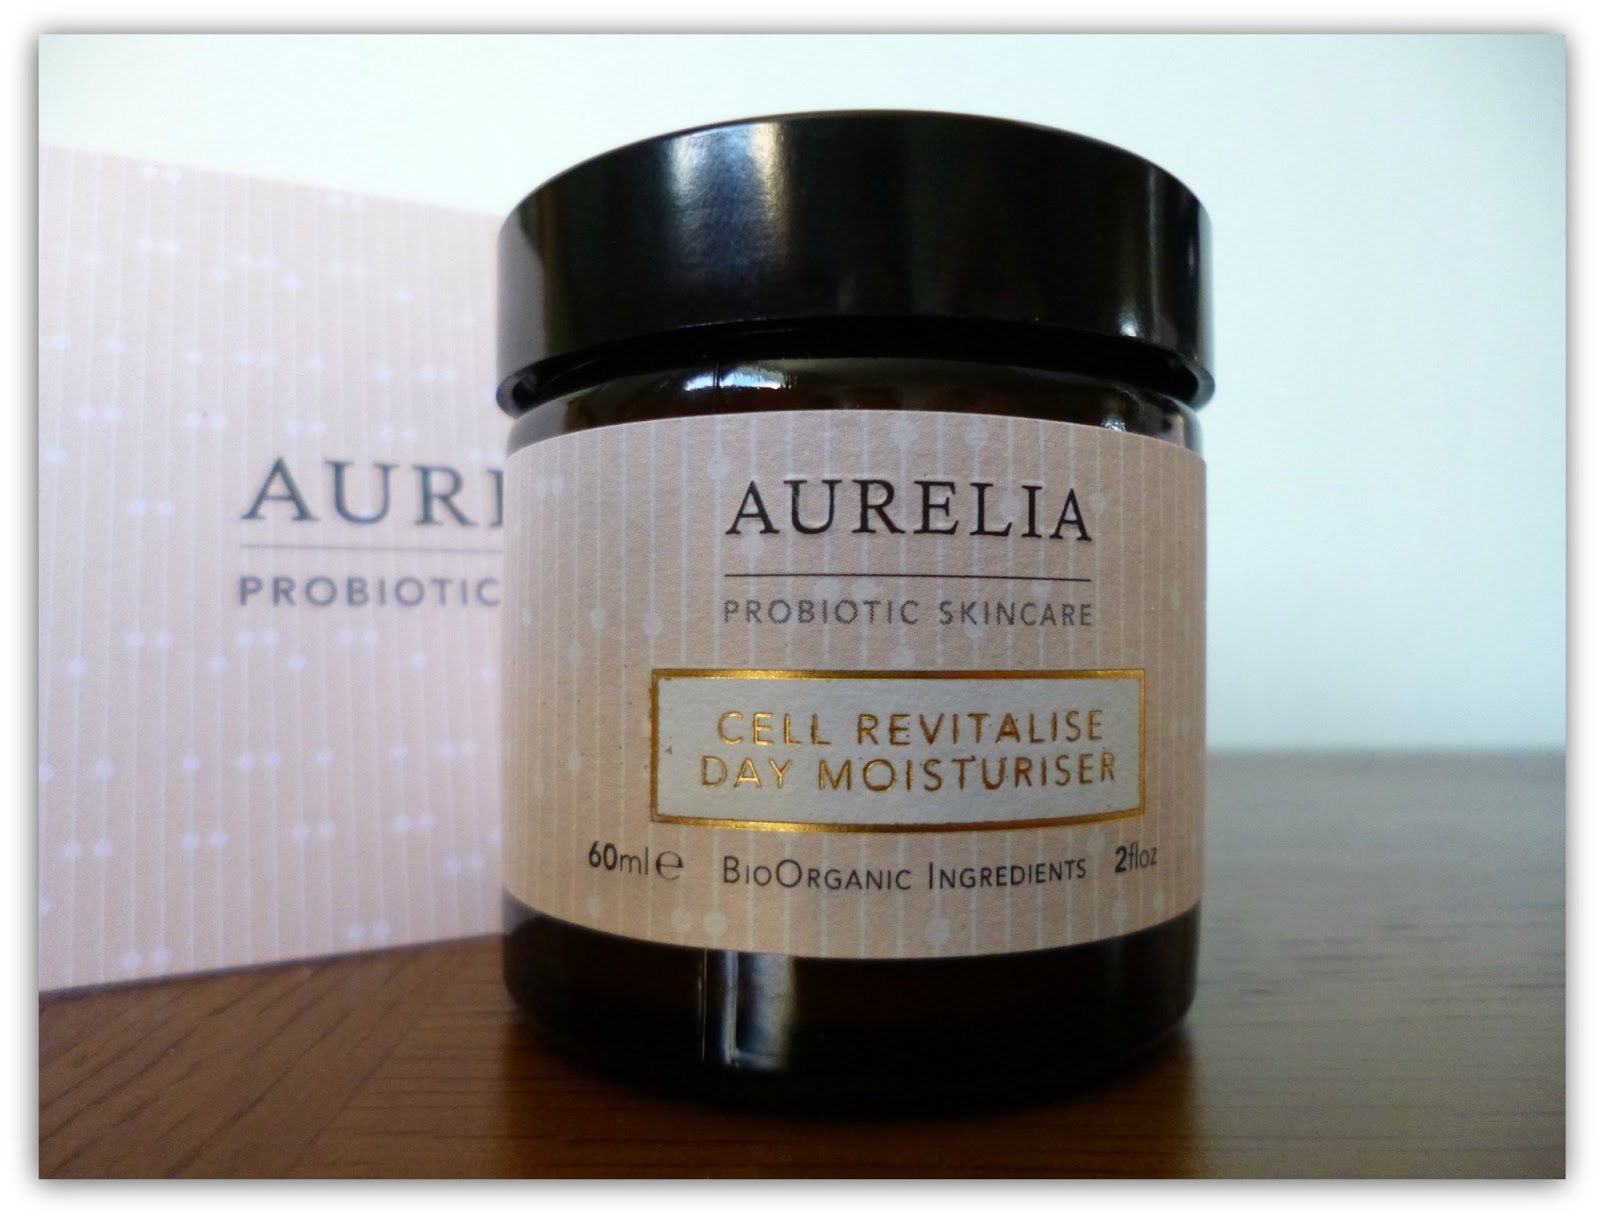 Aurelia probiotic skincare: Cell revitalise day moisturiser rave review